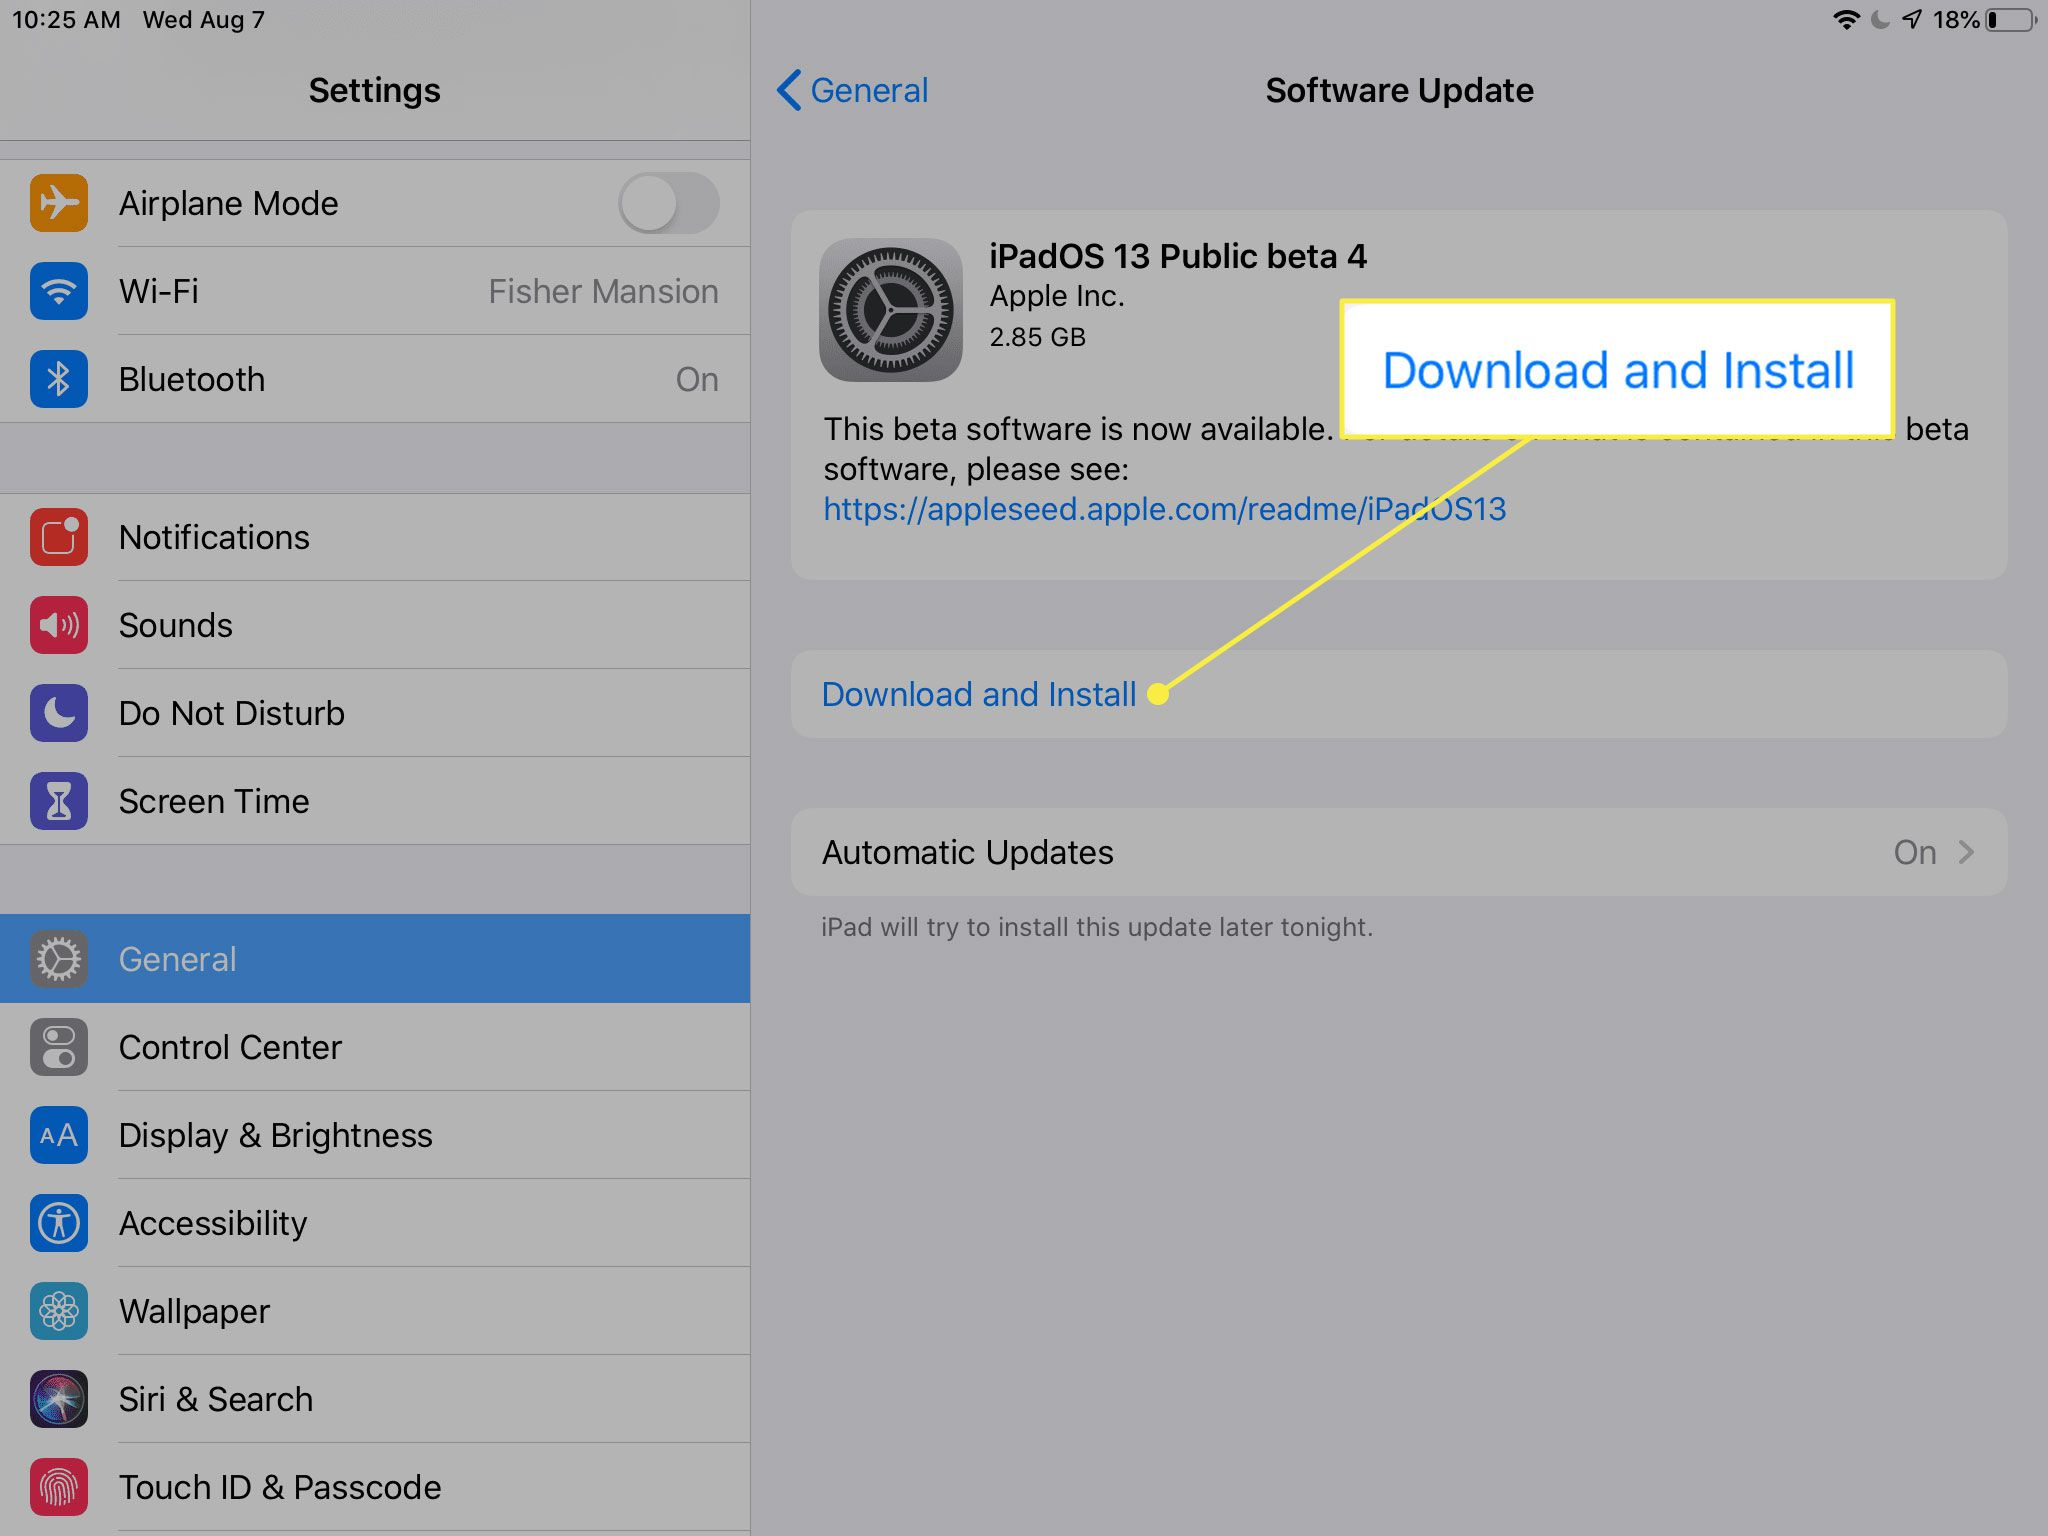 A screenshot of the Software Update screen on an iPad with the Download and Install command highlighted